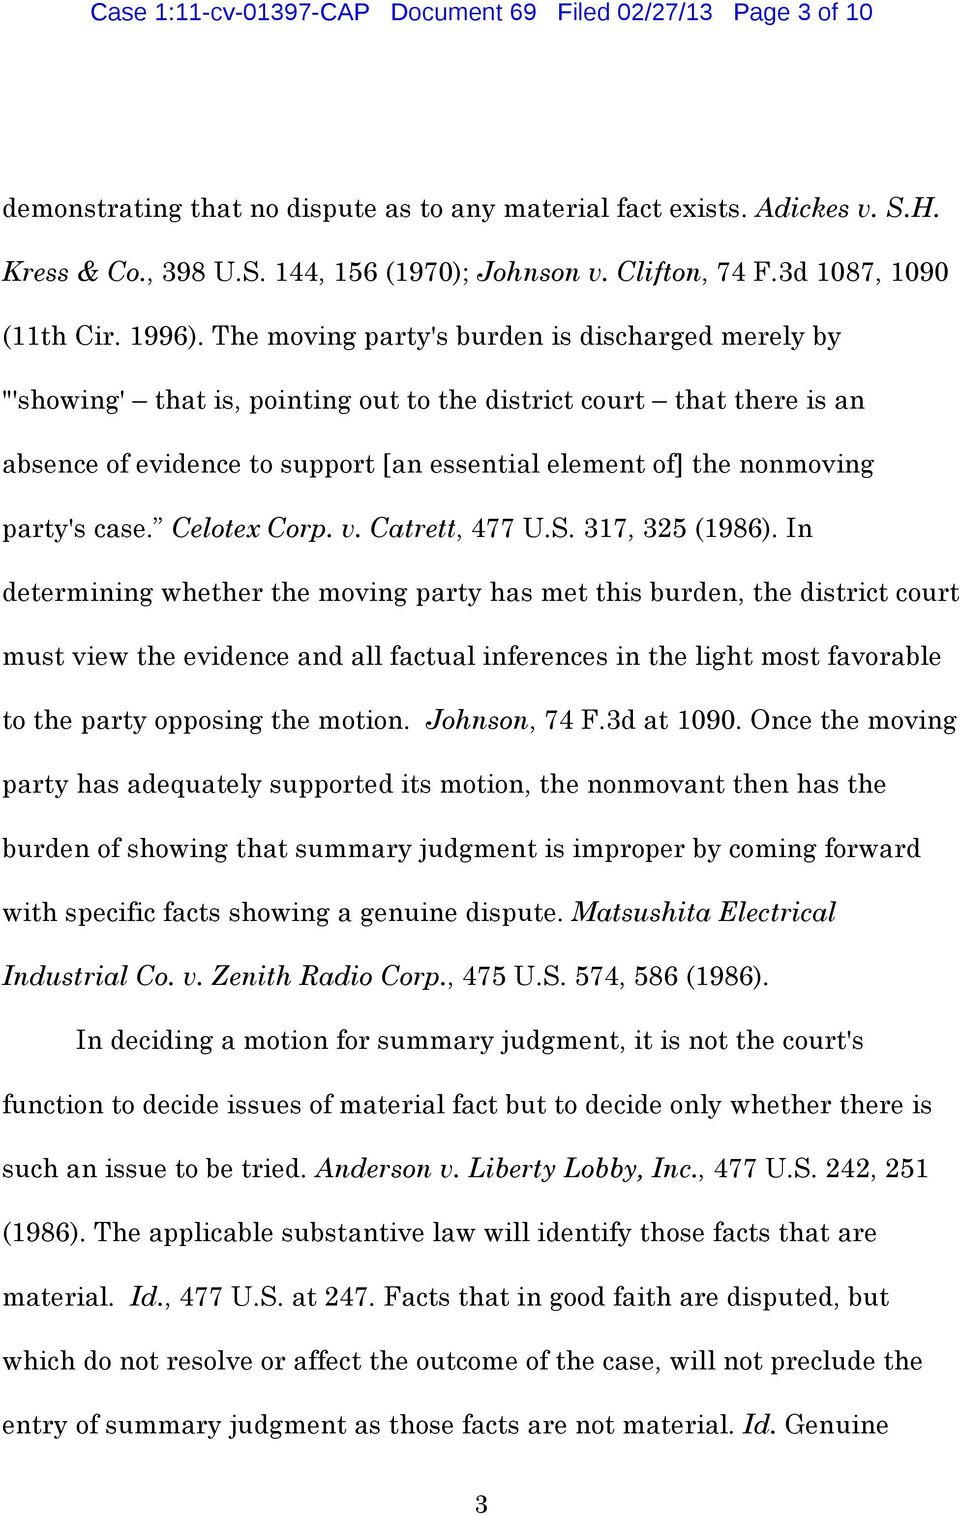 "The moving party's burden is discharged merely by ""'showing' that is, pointing out to the district court that there is an absence of evidence to support [an essential element of] the nonmoving"